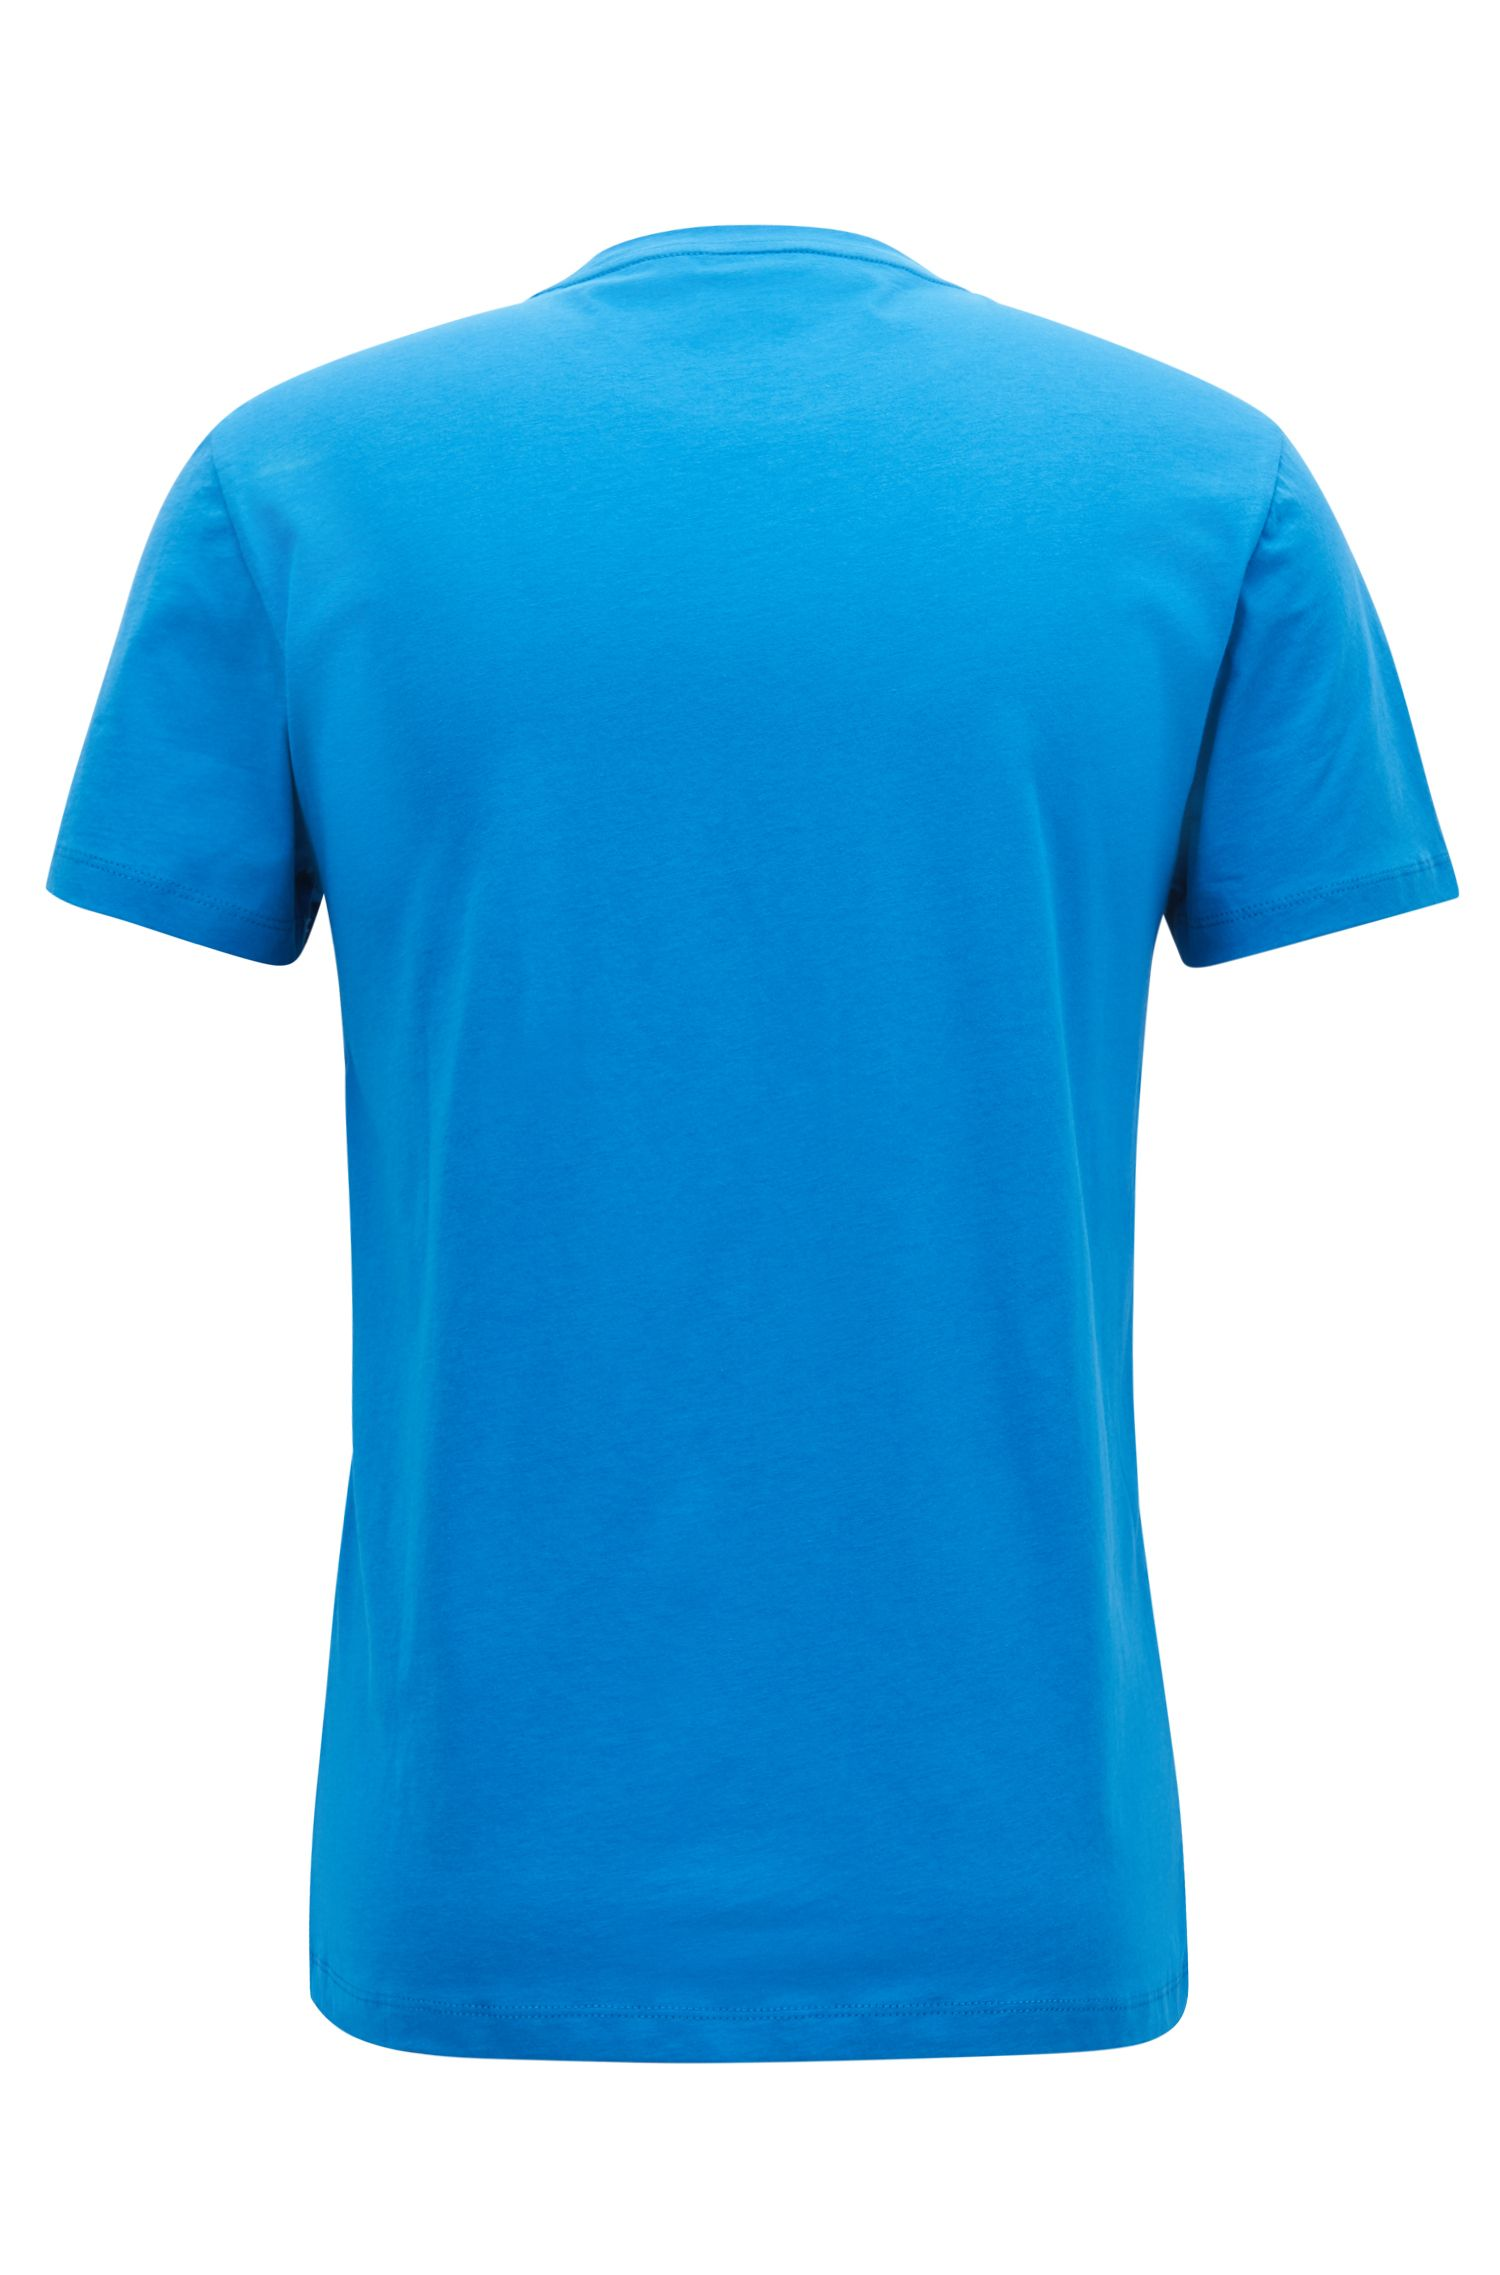 Jersey T-shirt with dégradé flocked logo, Blue